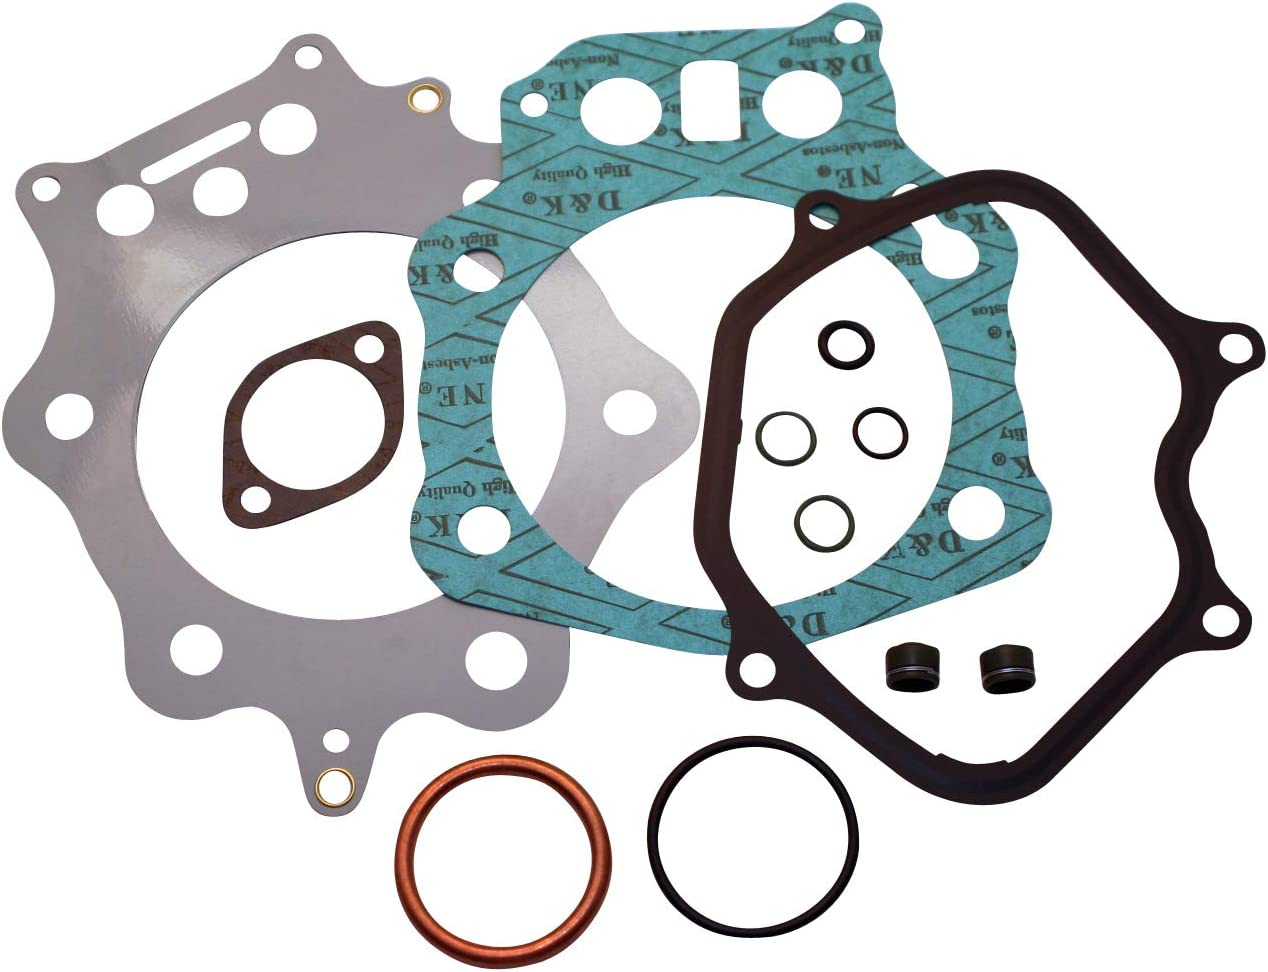 Venom Top End Gasket Kit (Fits/Comparable With Honda) 1998-2004 TRX450S - TRX450ES Foreman 4x4 INCLUDES Multi-Layered Metal Head Gasket & Valve Seals